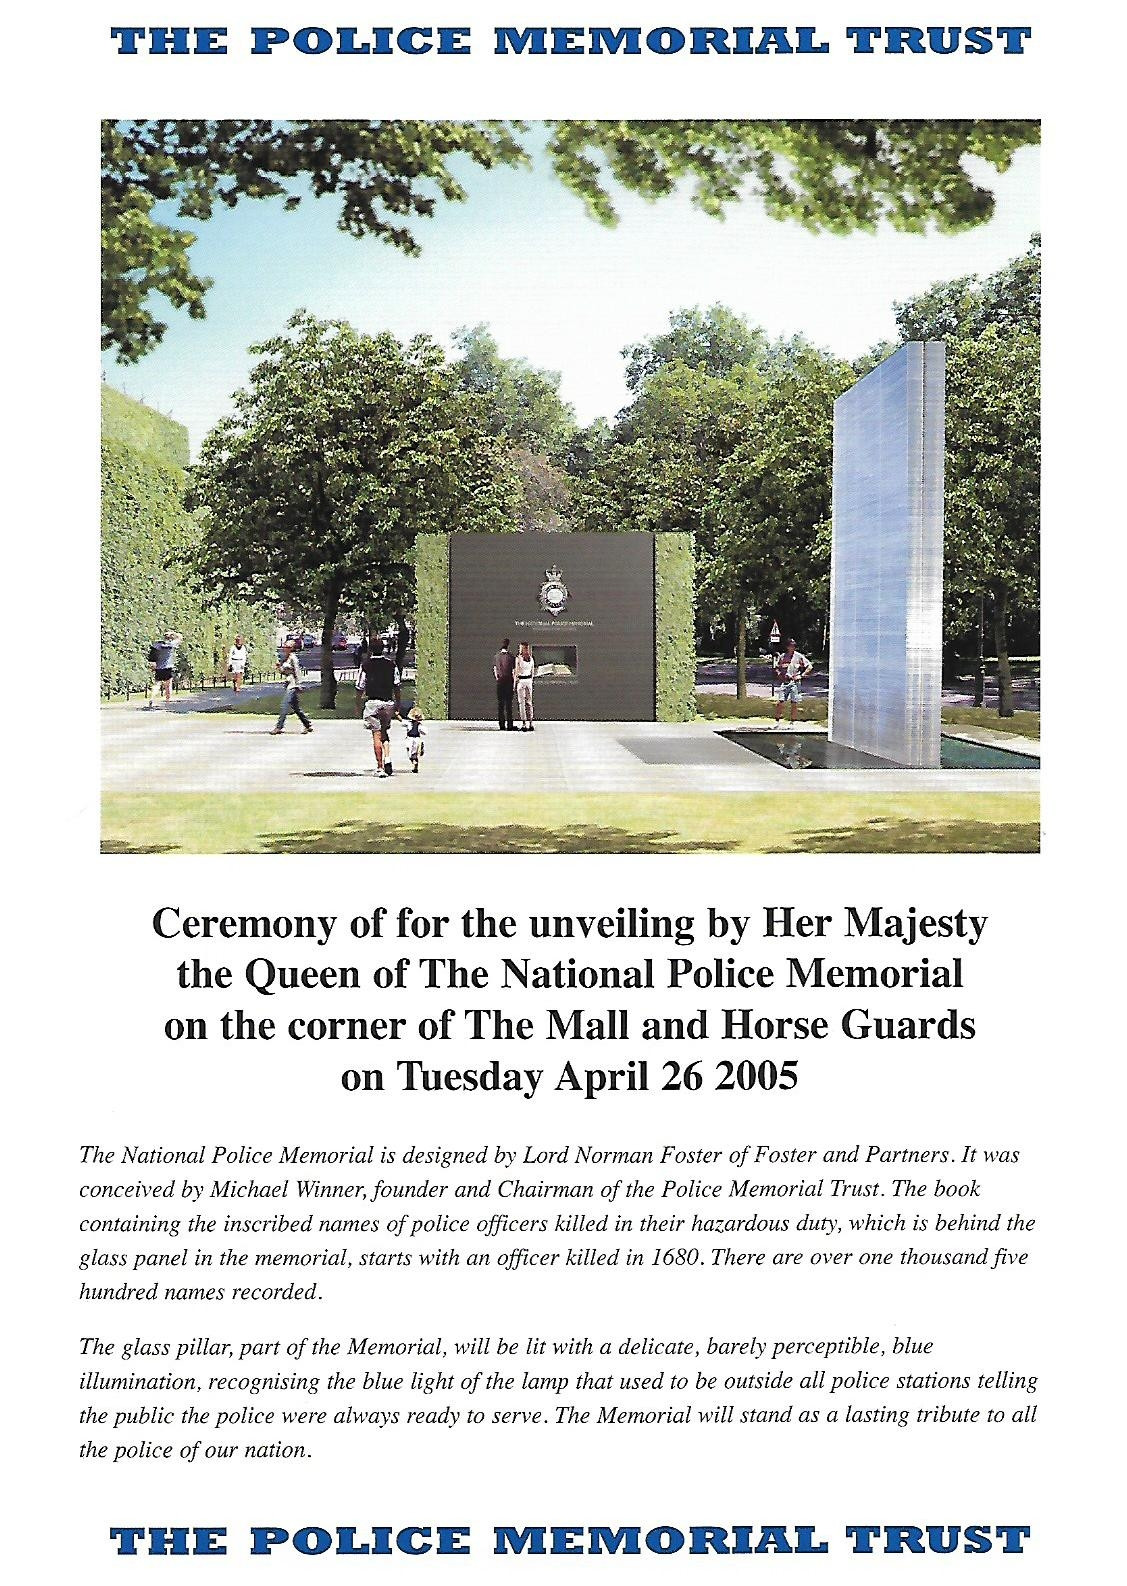 The Queen Unveiling the Memorial Programme 1